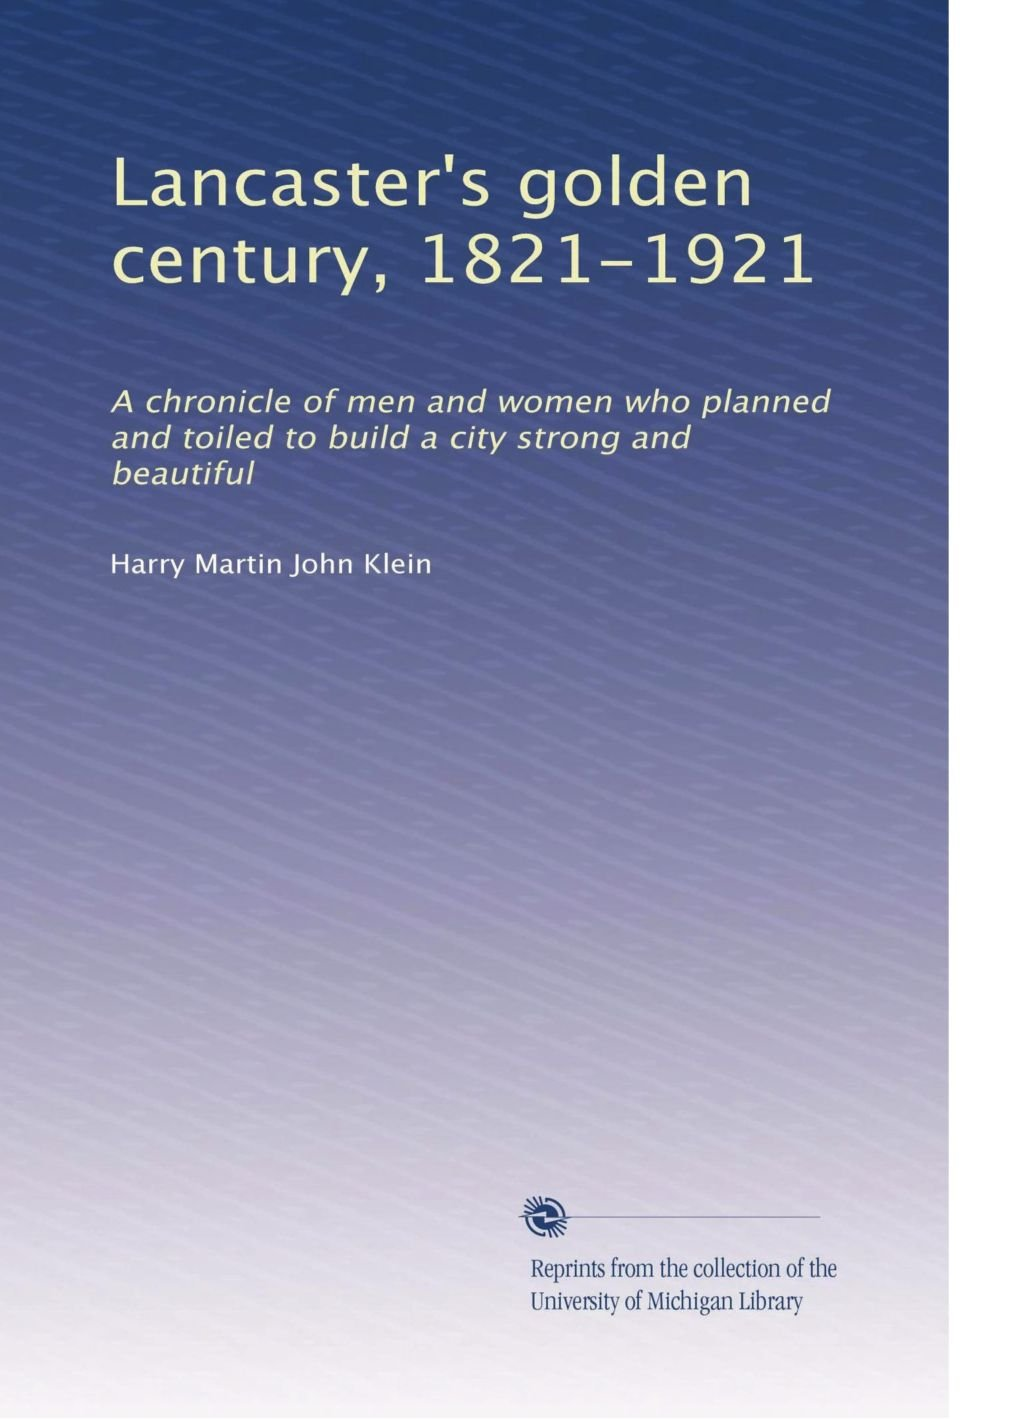 Lancaster's golden century, 1821-1921: A chronicle of men and women who planned and toiled to build a city strong and beautiful pdf epub